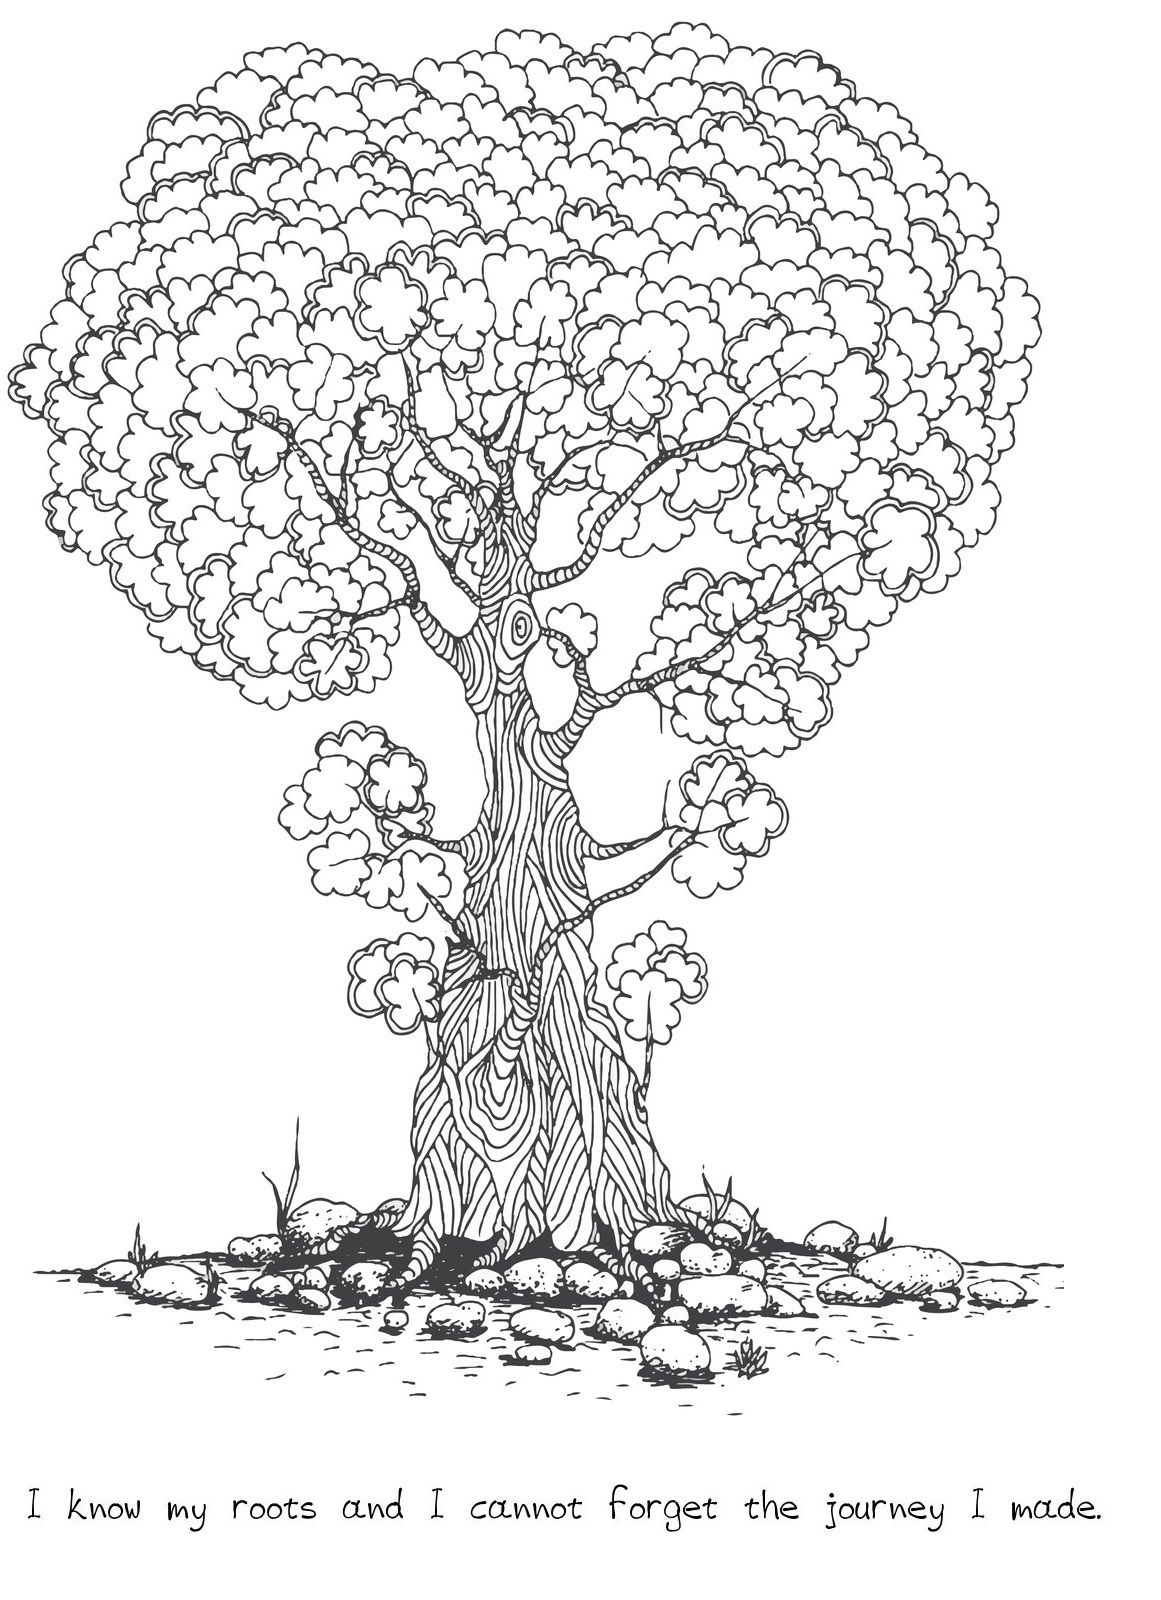 Tree Quotes And Coloring Page Coloring Books Wise Tree Quote Coloring Pages